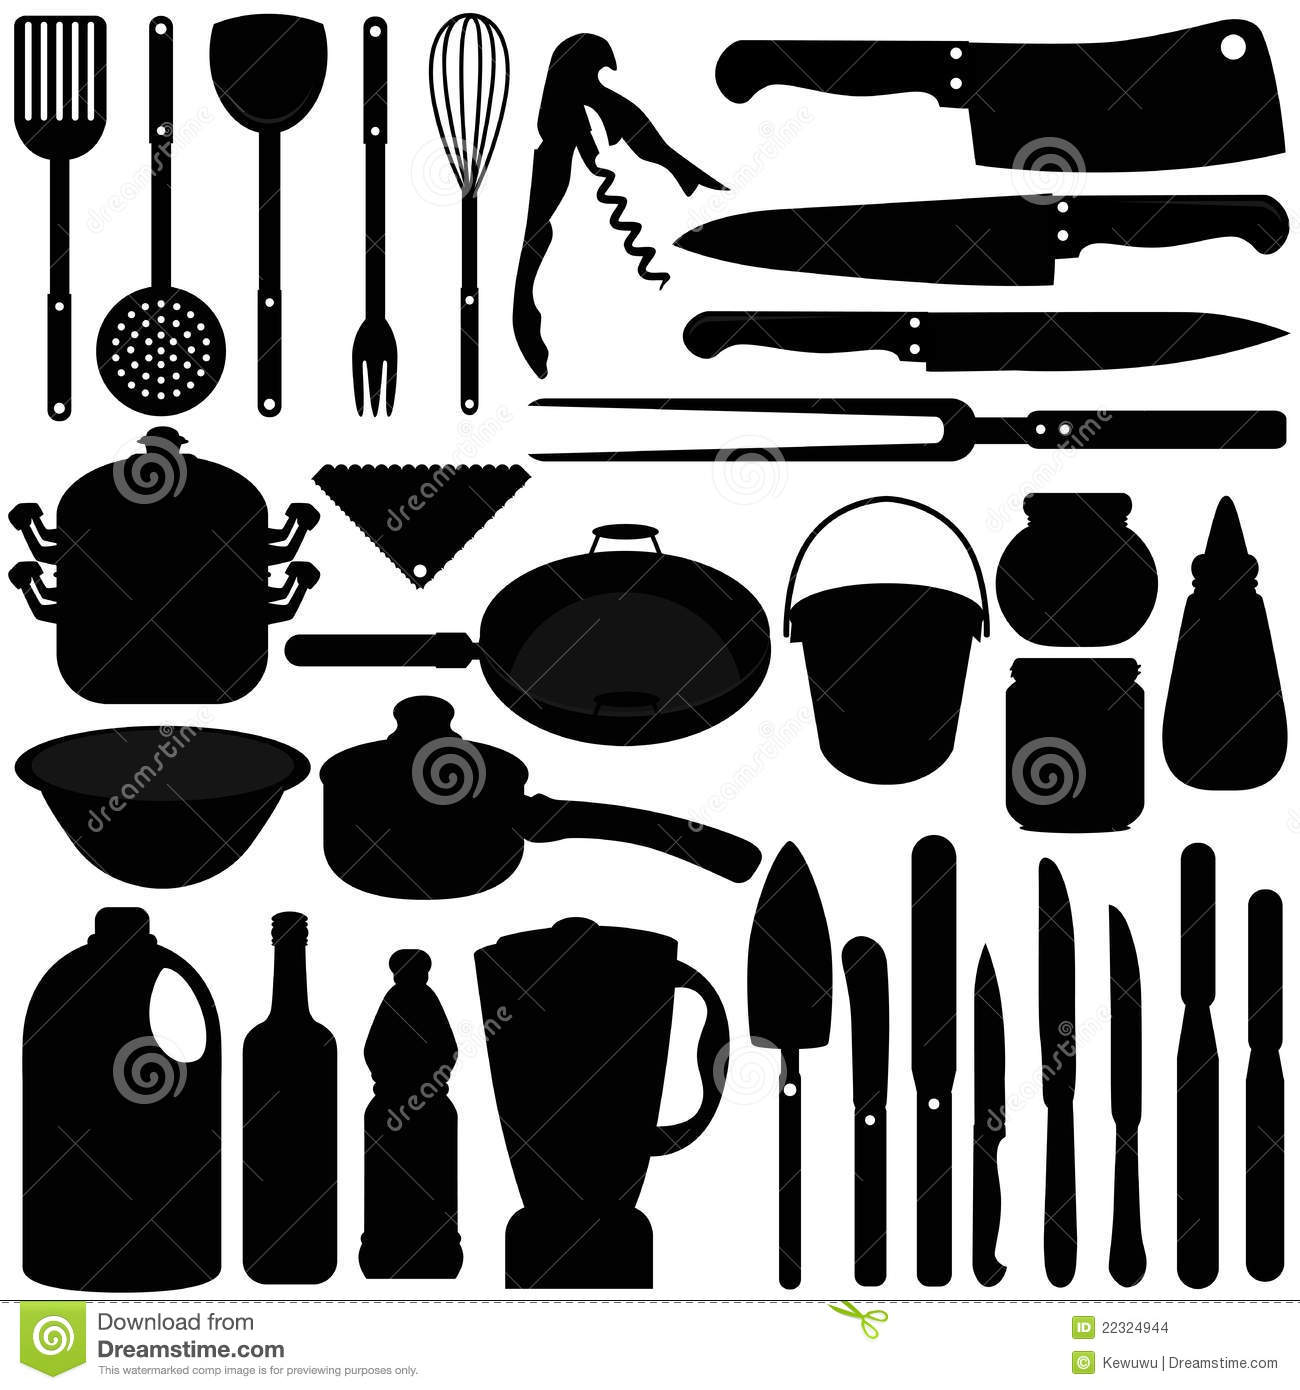 Free shipping on Utensils in KitchenDining amp Bar Home